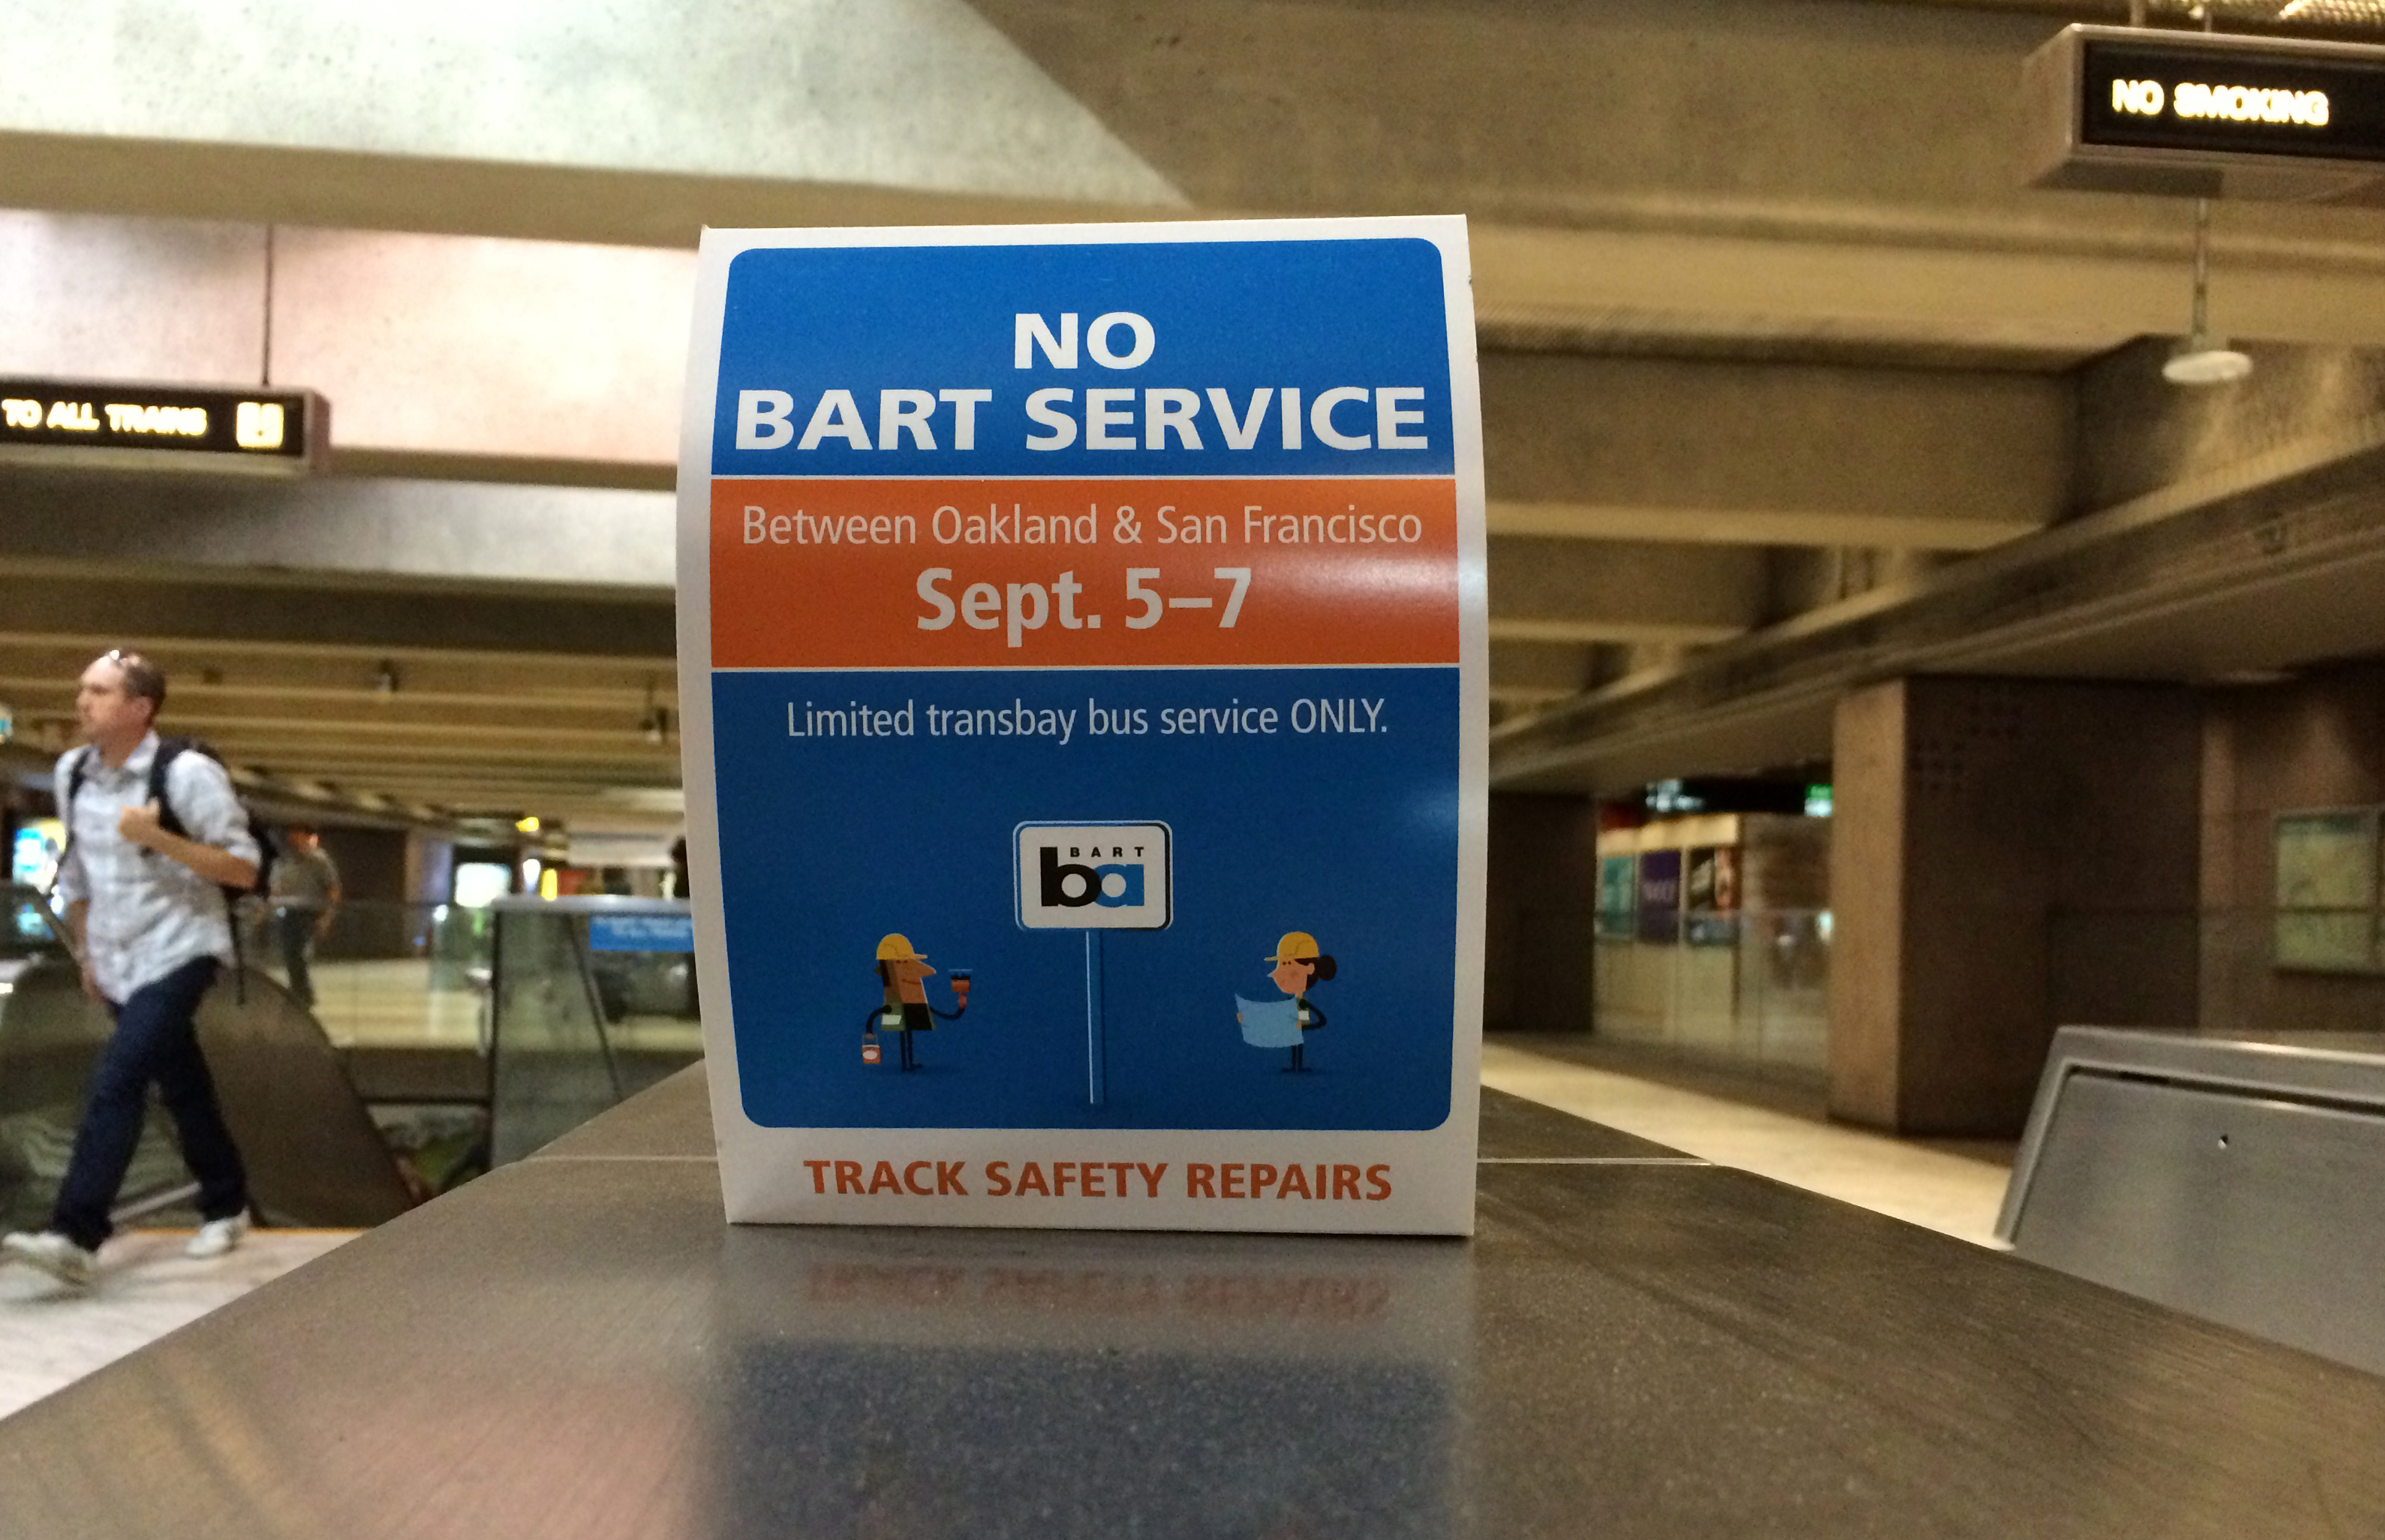 BART is using pop-up signs on turnstiles to advertise this weekend's transbay closure. (Susan Cohen/KQED)